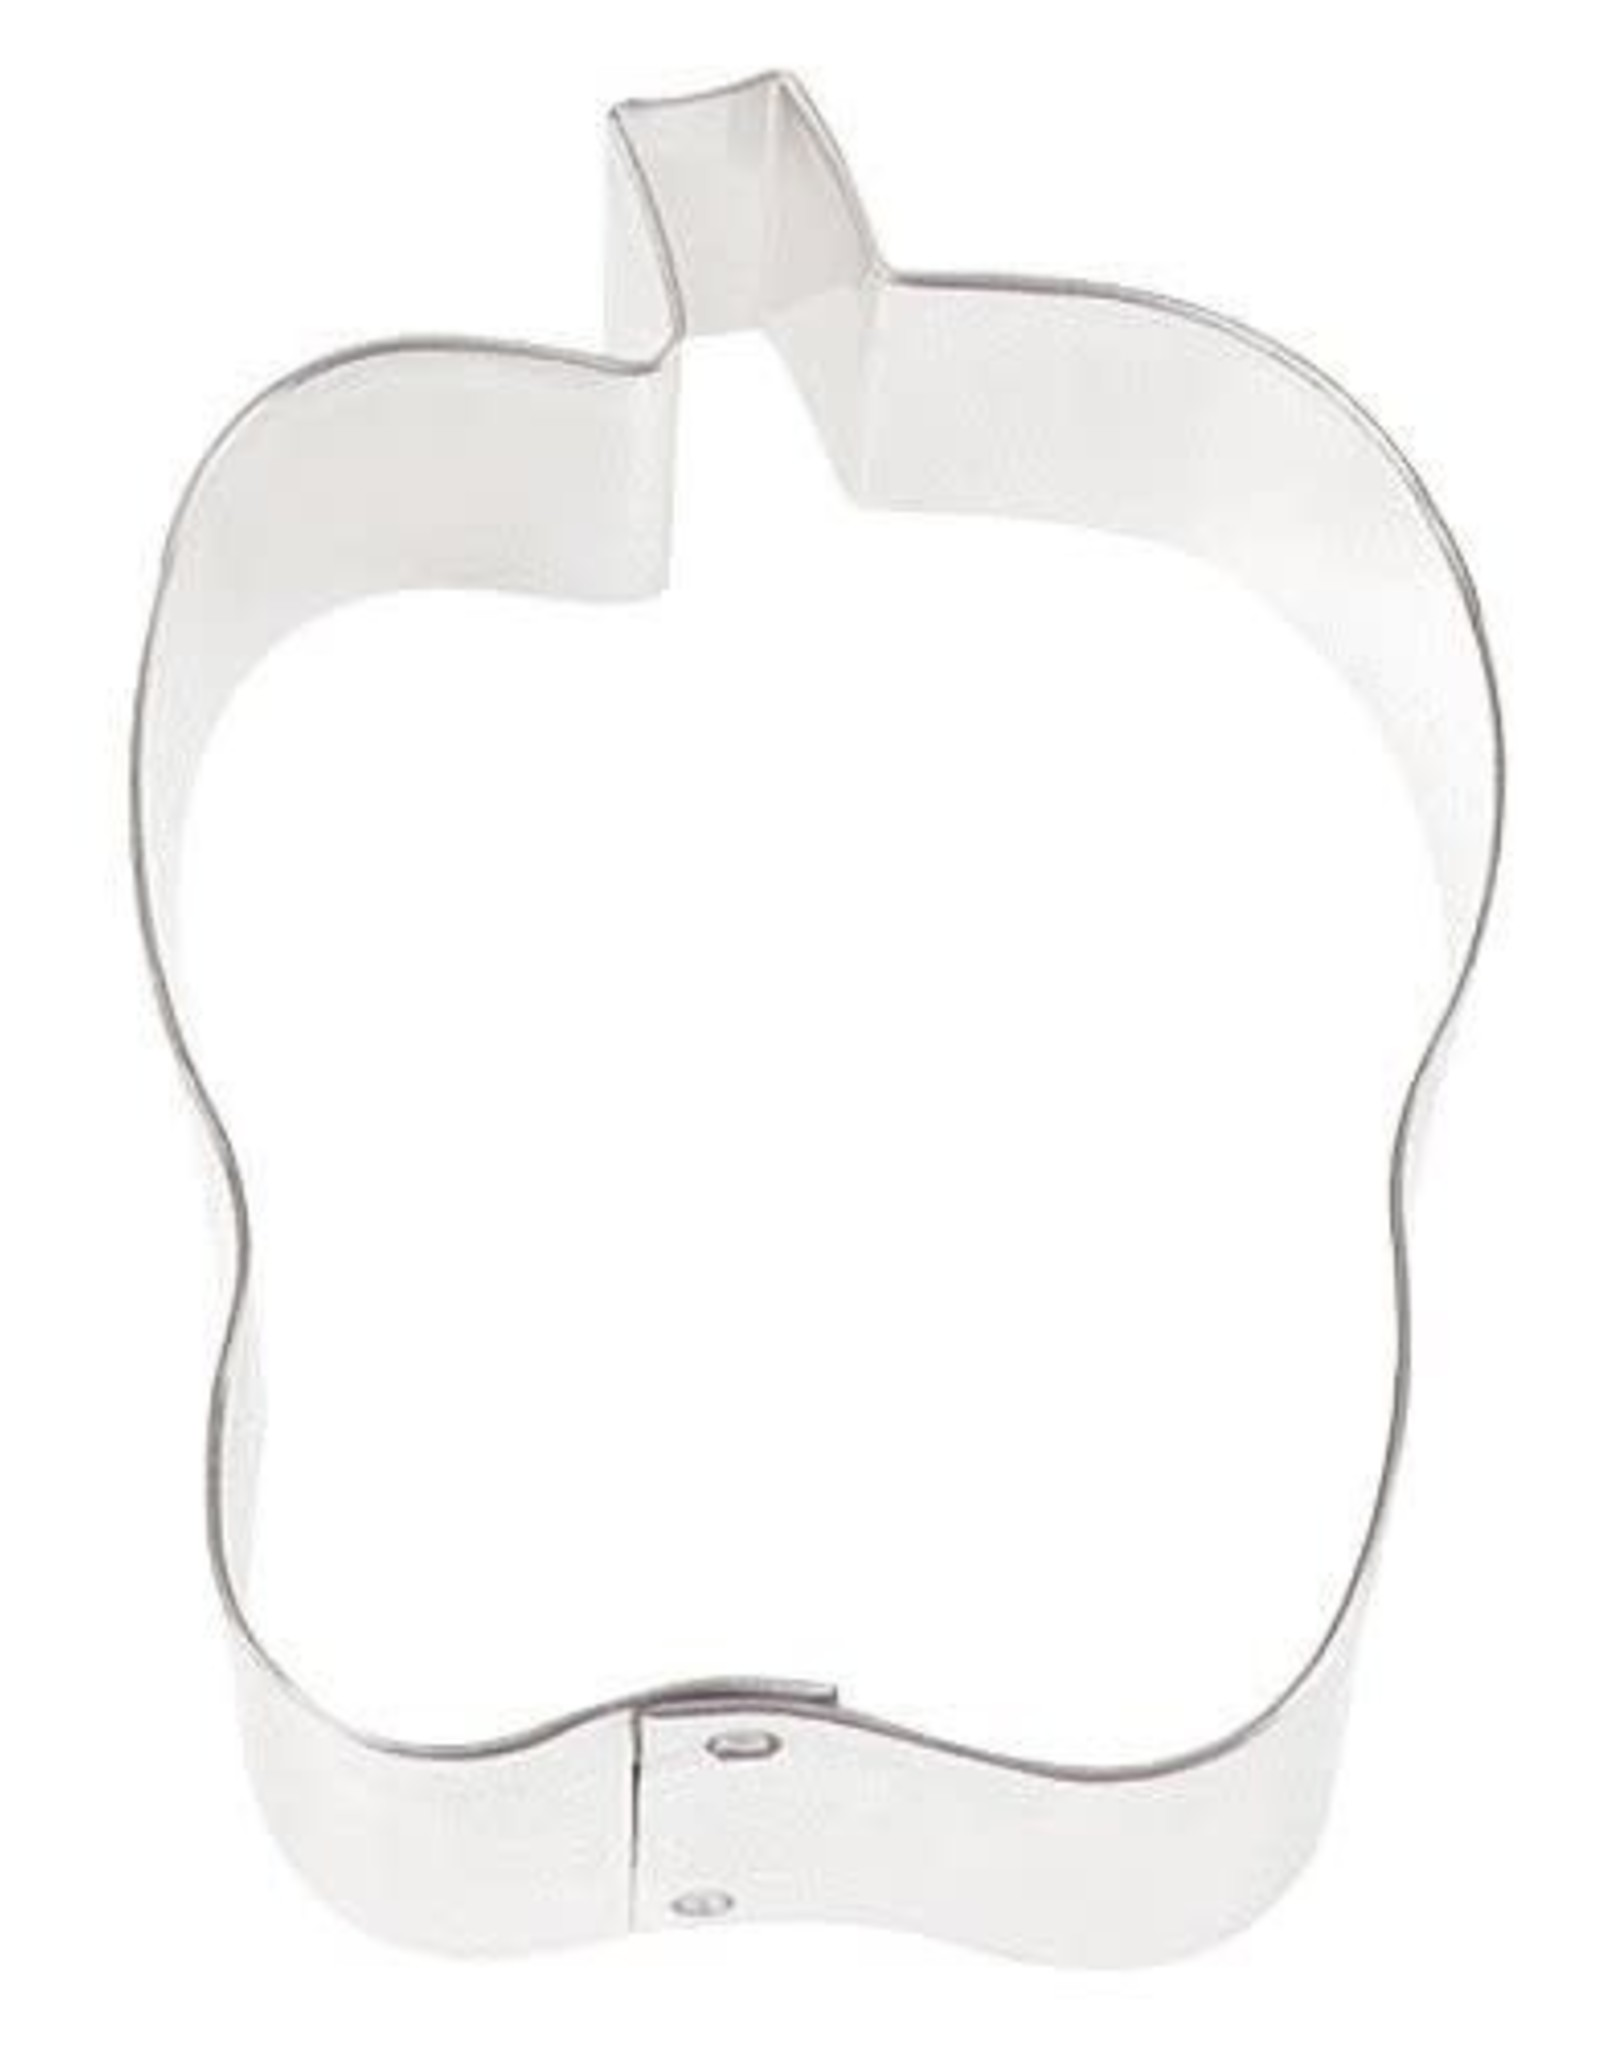 Ann Clark 3'' Apple Cookie Cutter